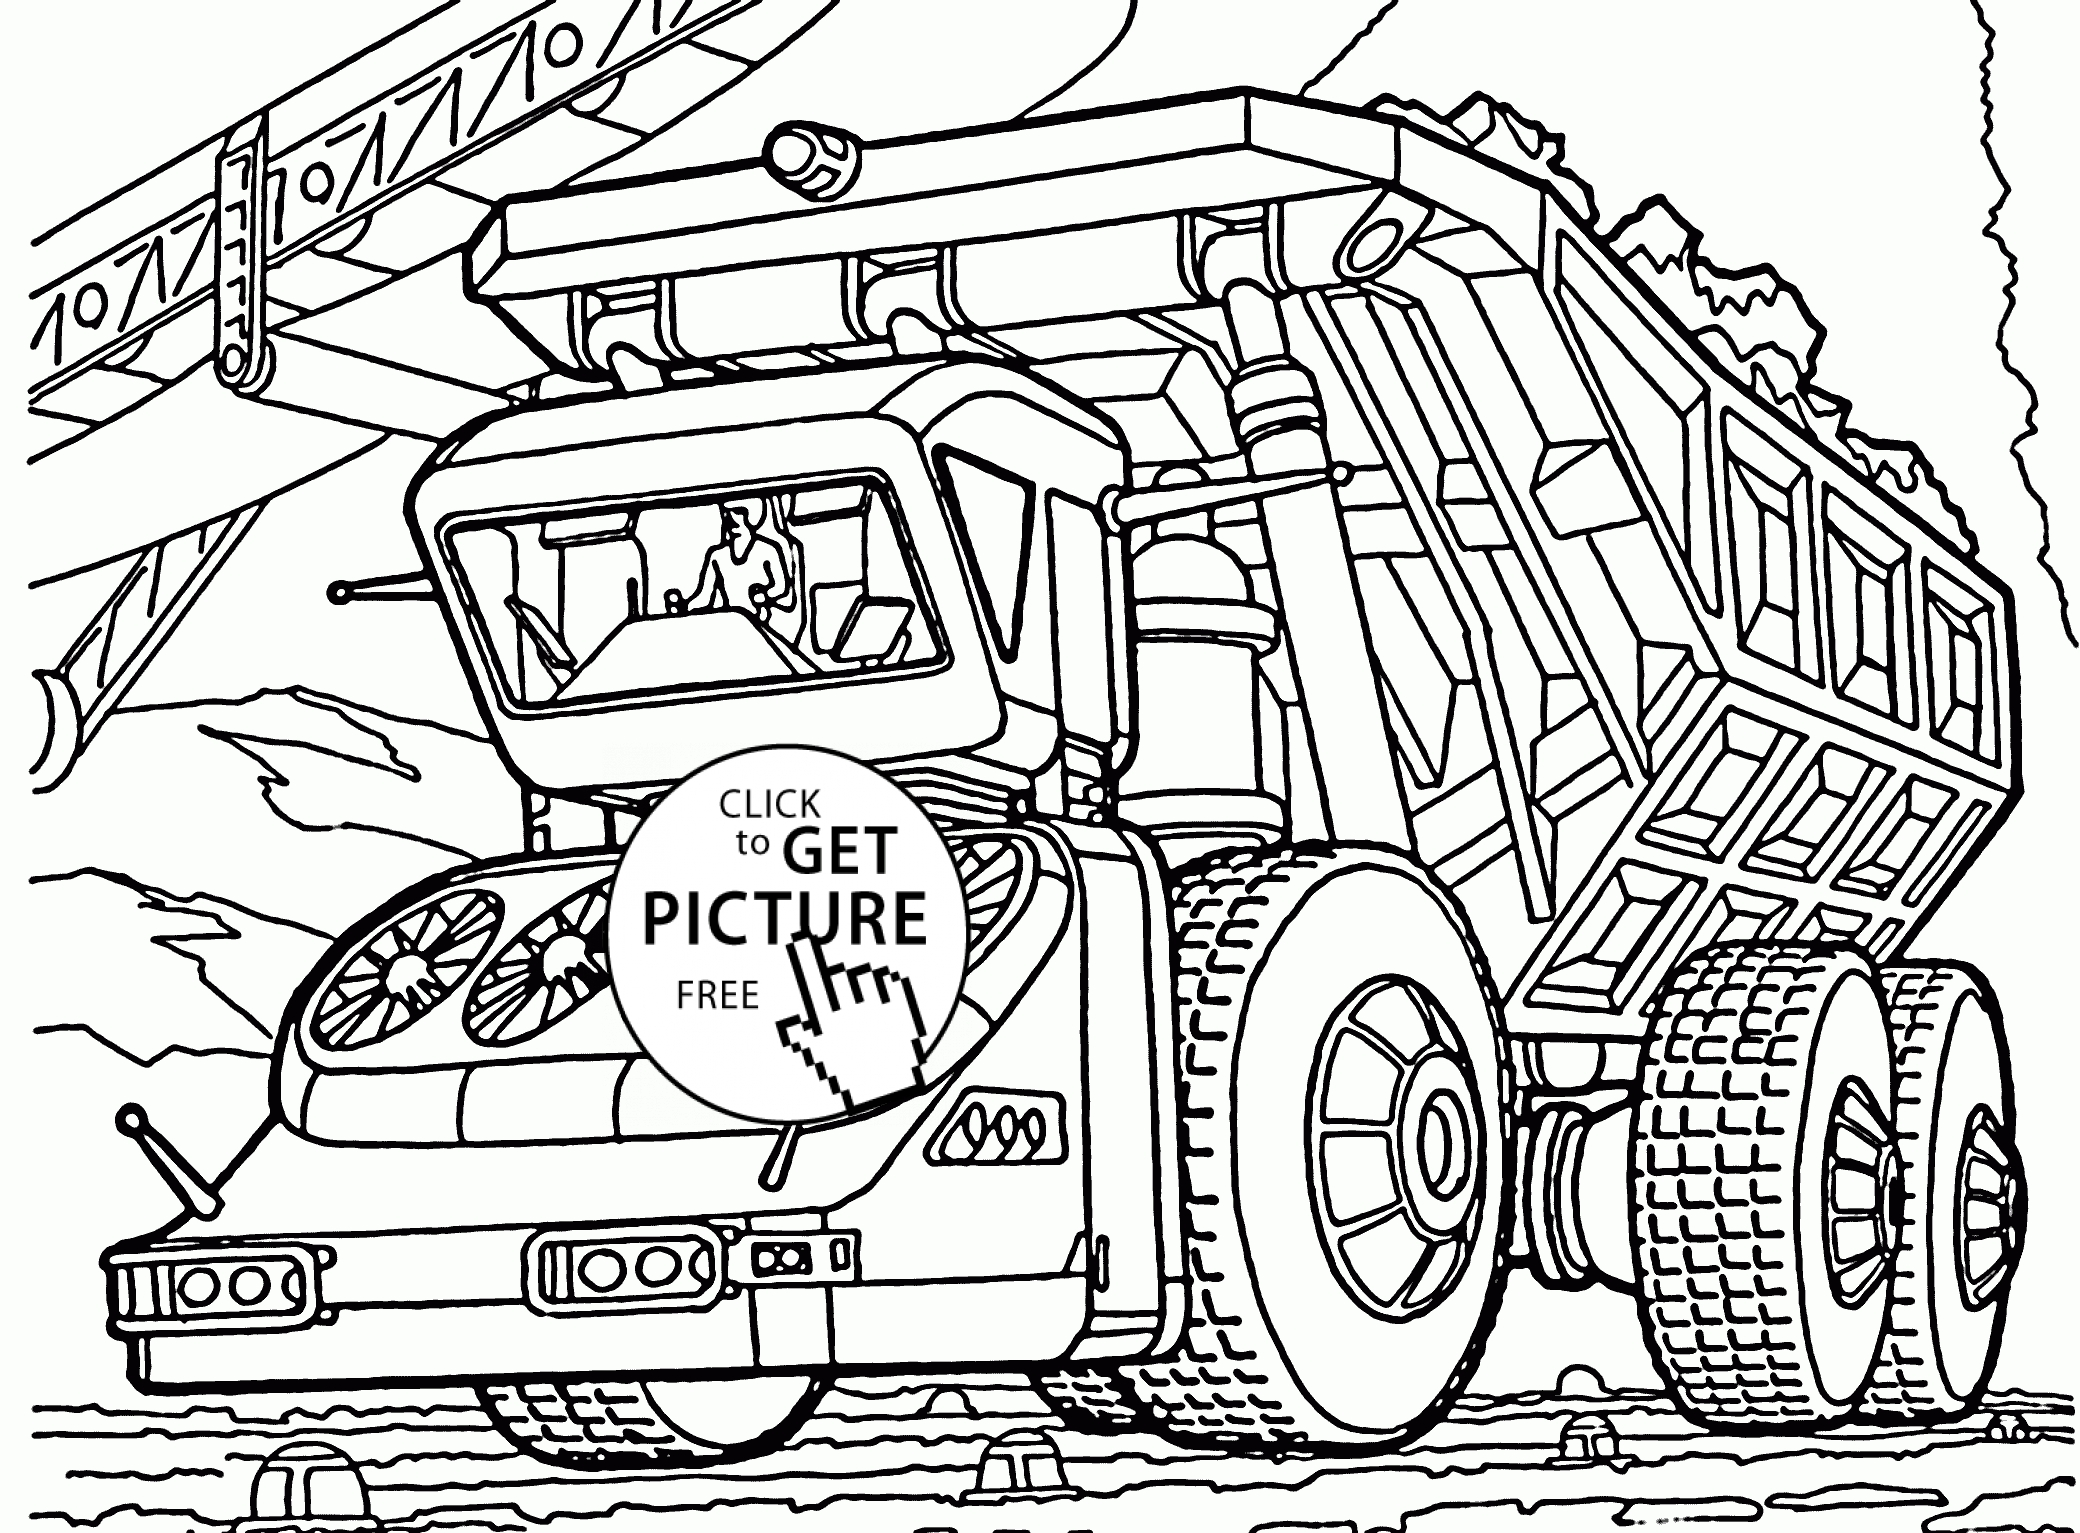 dump truck coloring pages - biggest dump truck coloring page for kids transportation coloring pages printables free